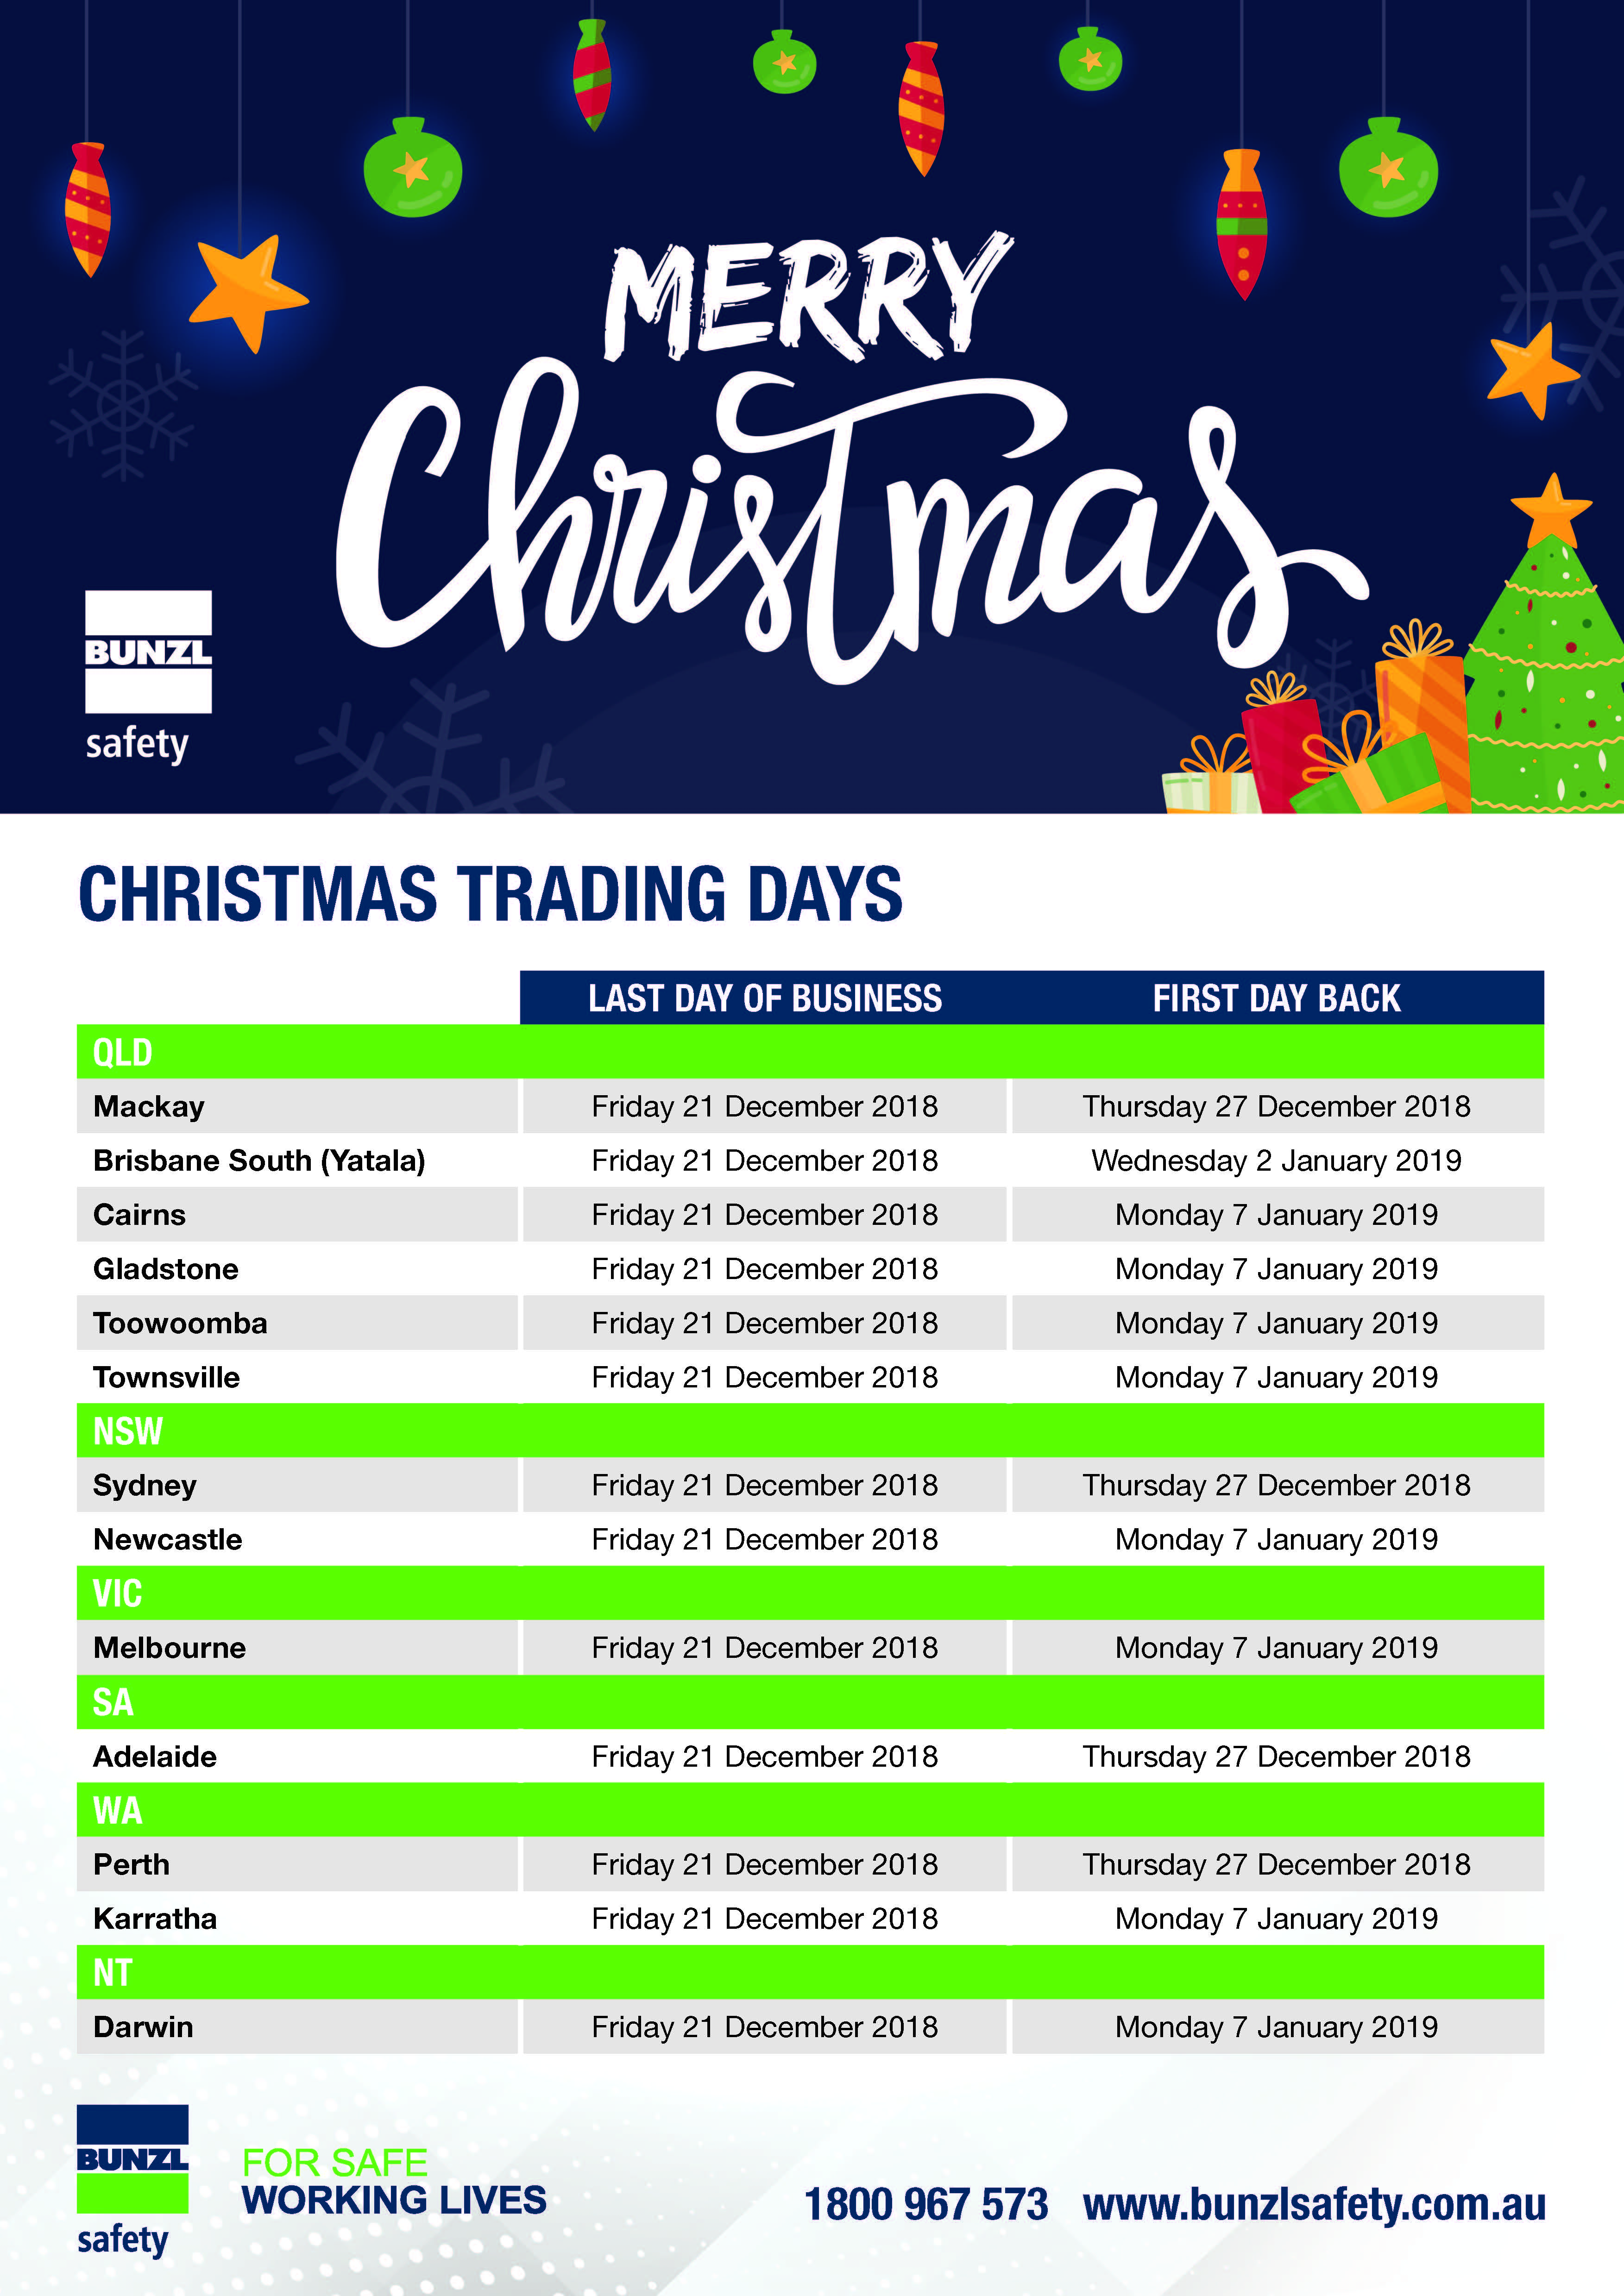 Bunzl Safety Christmas Trading Days 2018